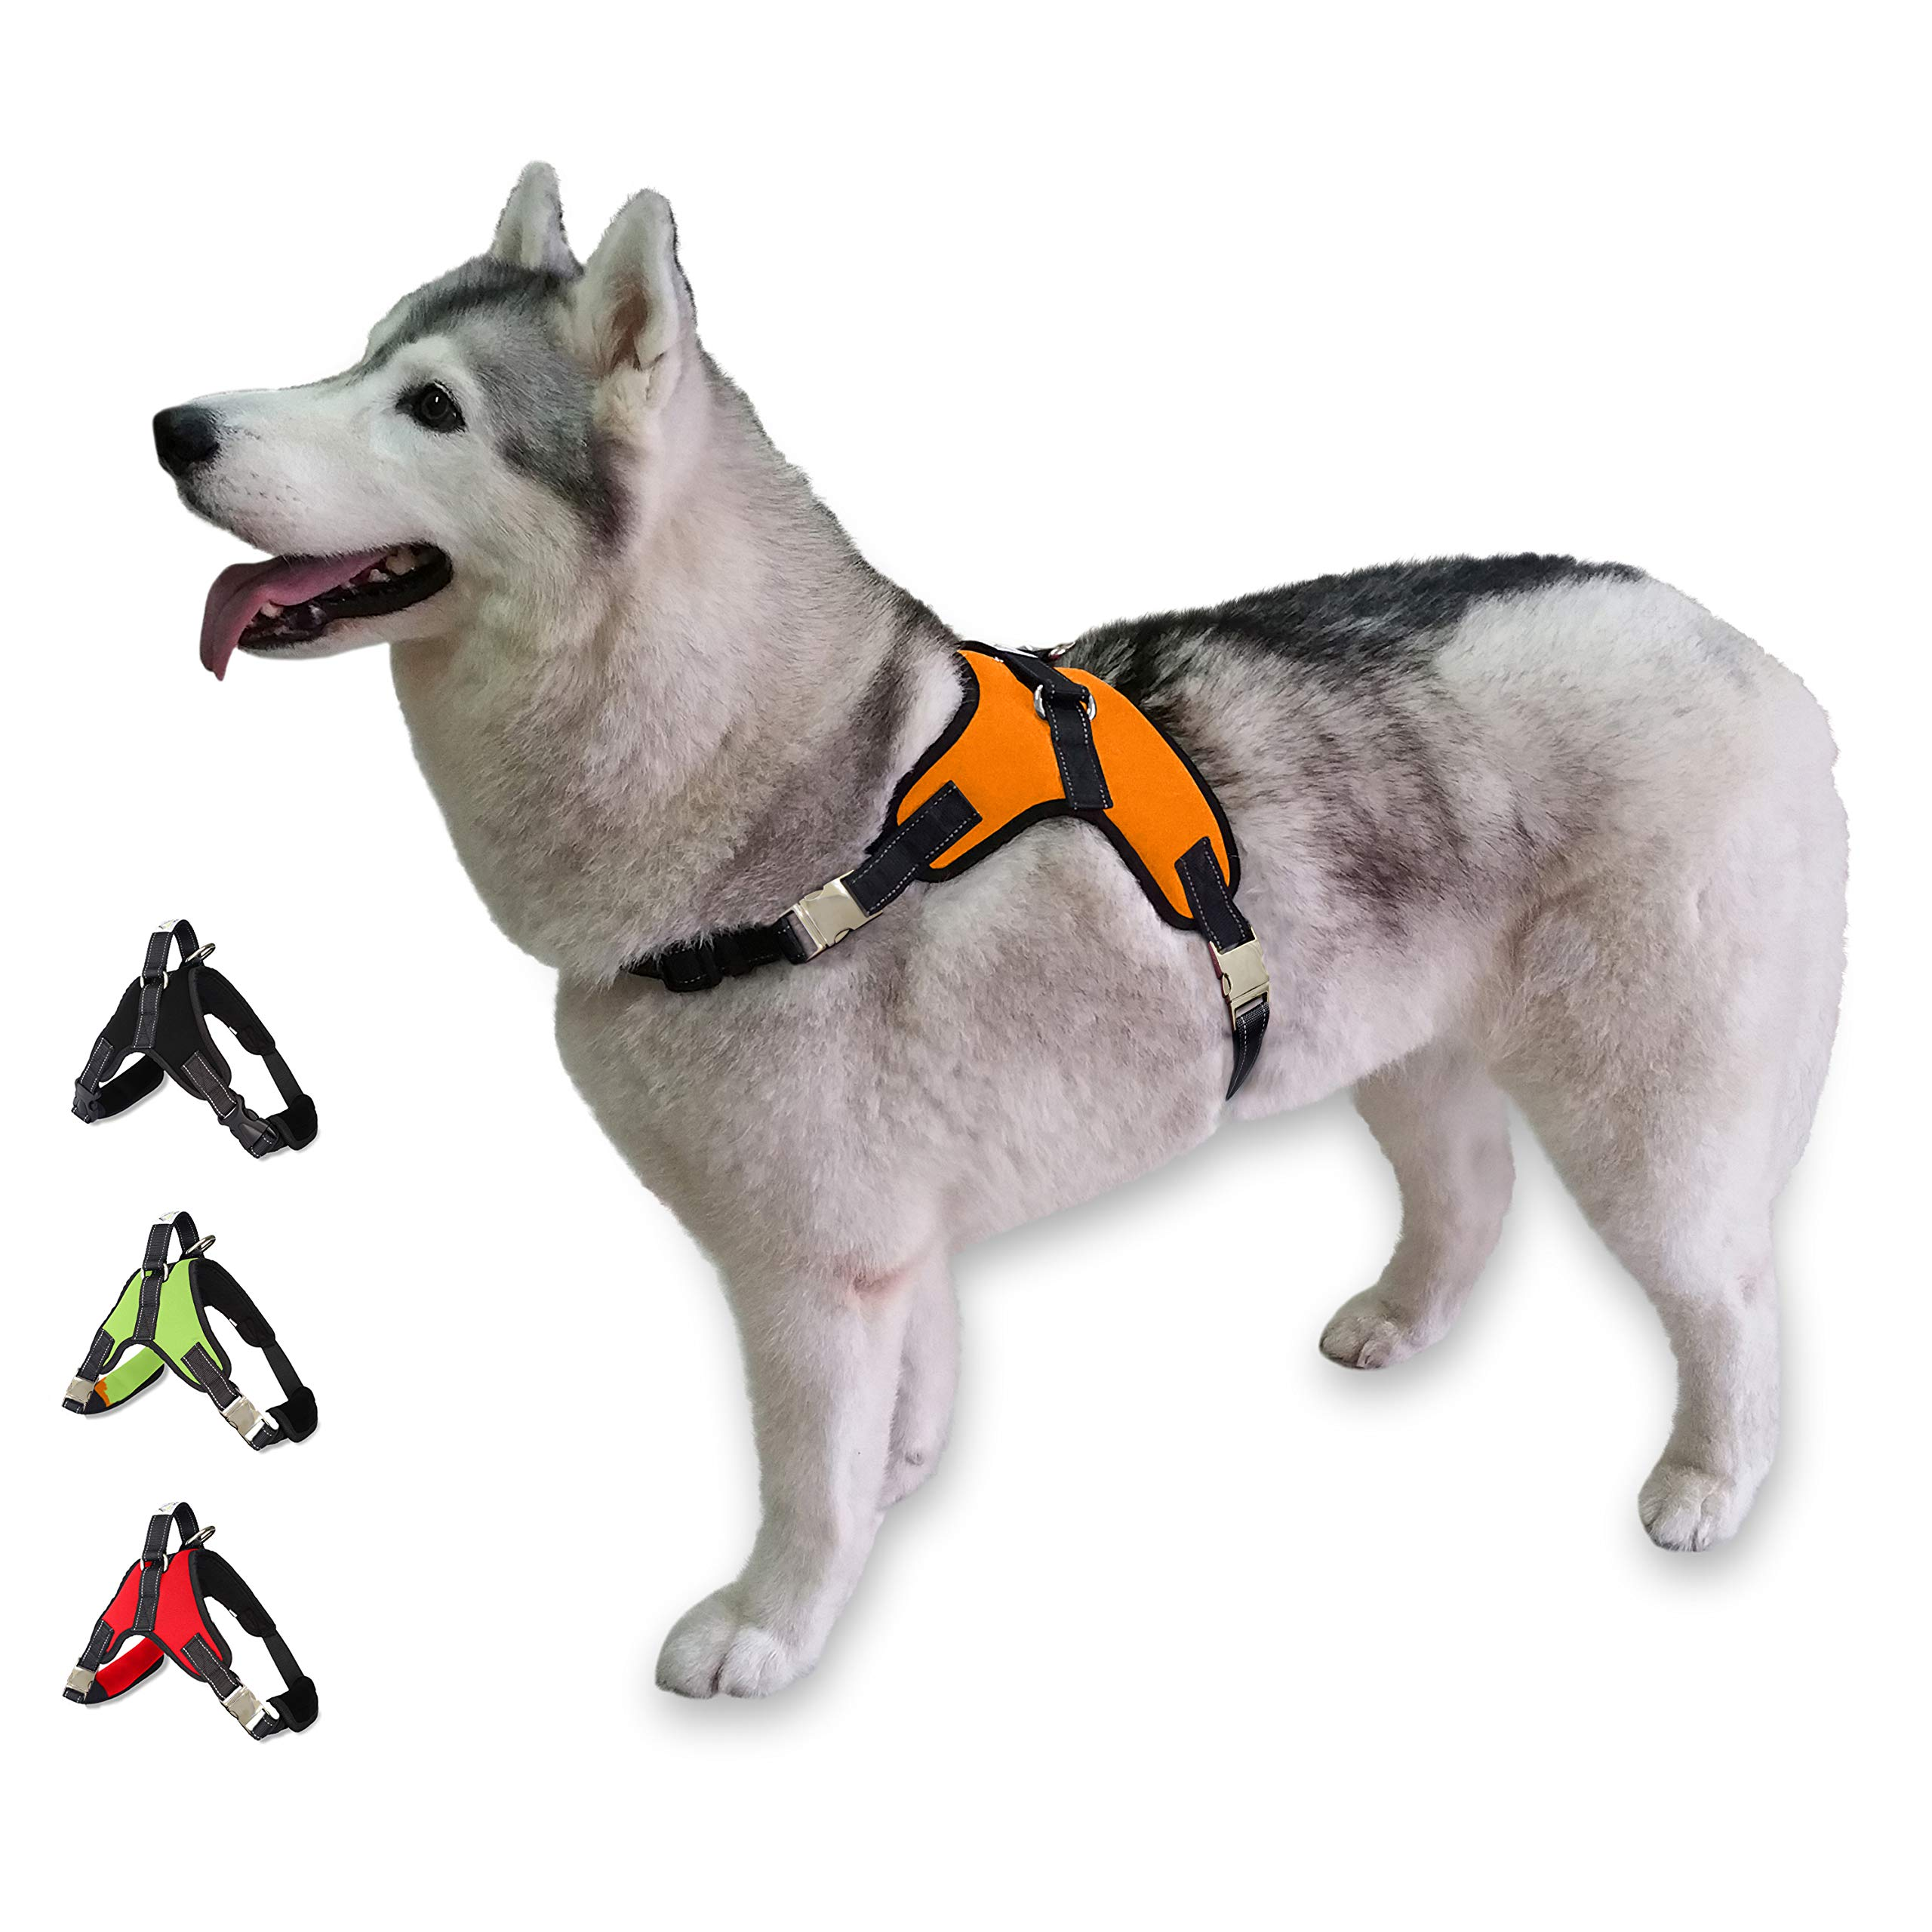 Cosy Meadow Escape Proof Dog Harness - Padded No Pull Everyday Soft Sport Vest   Secure to Car Seat Belt   No Choke   Sturdy Handle   2019 New & Improved   Prime   Orange Large Breed